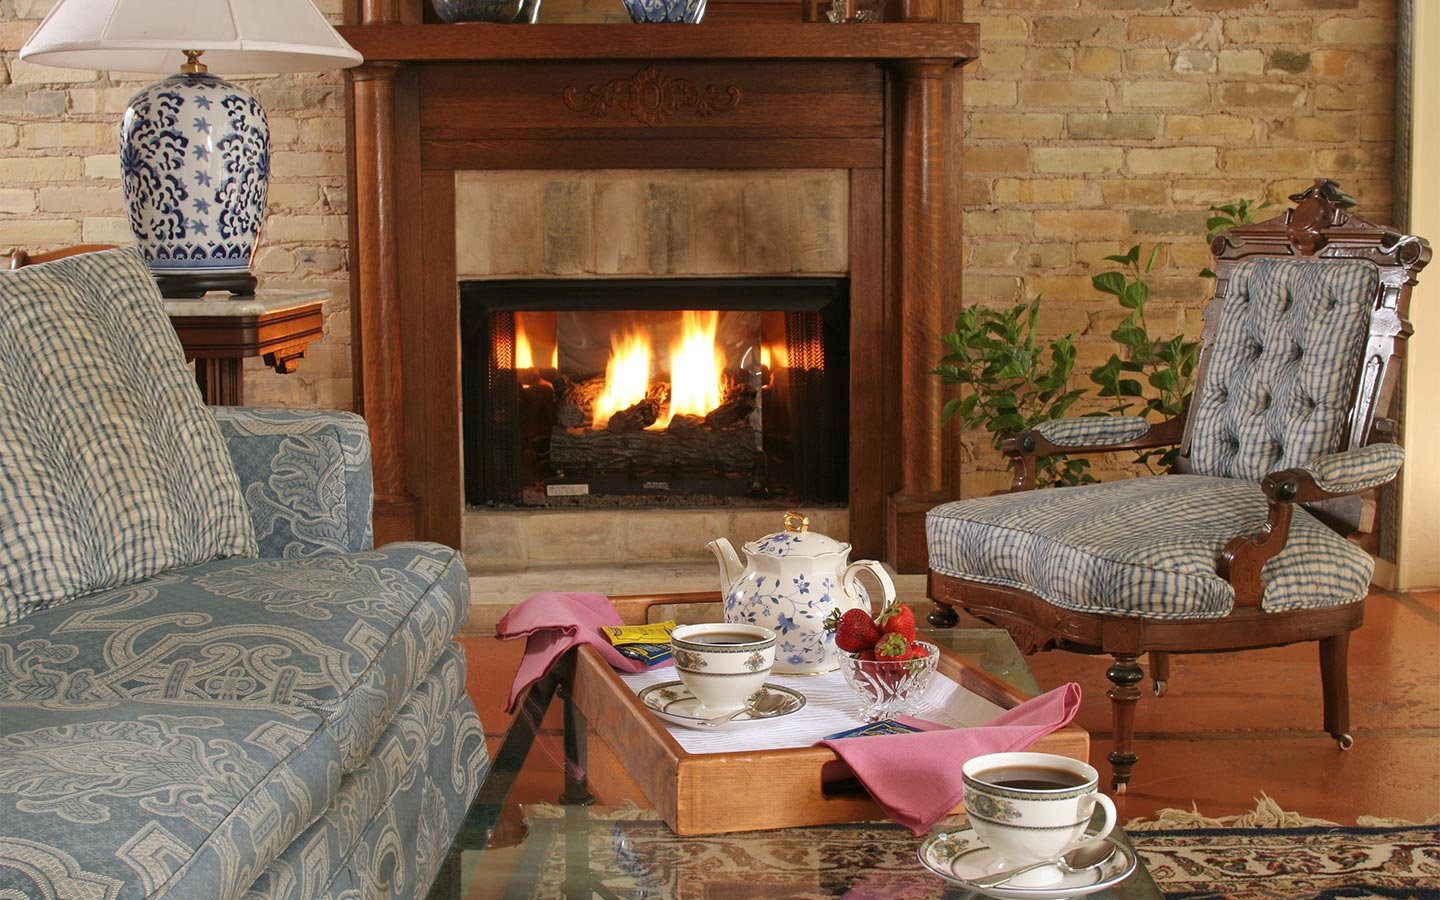 Bed And Breakfast In San Antonio Tx Romance On The